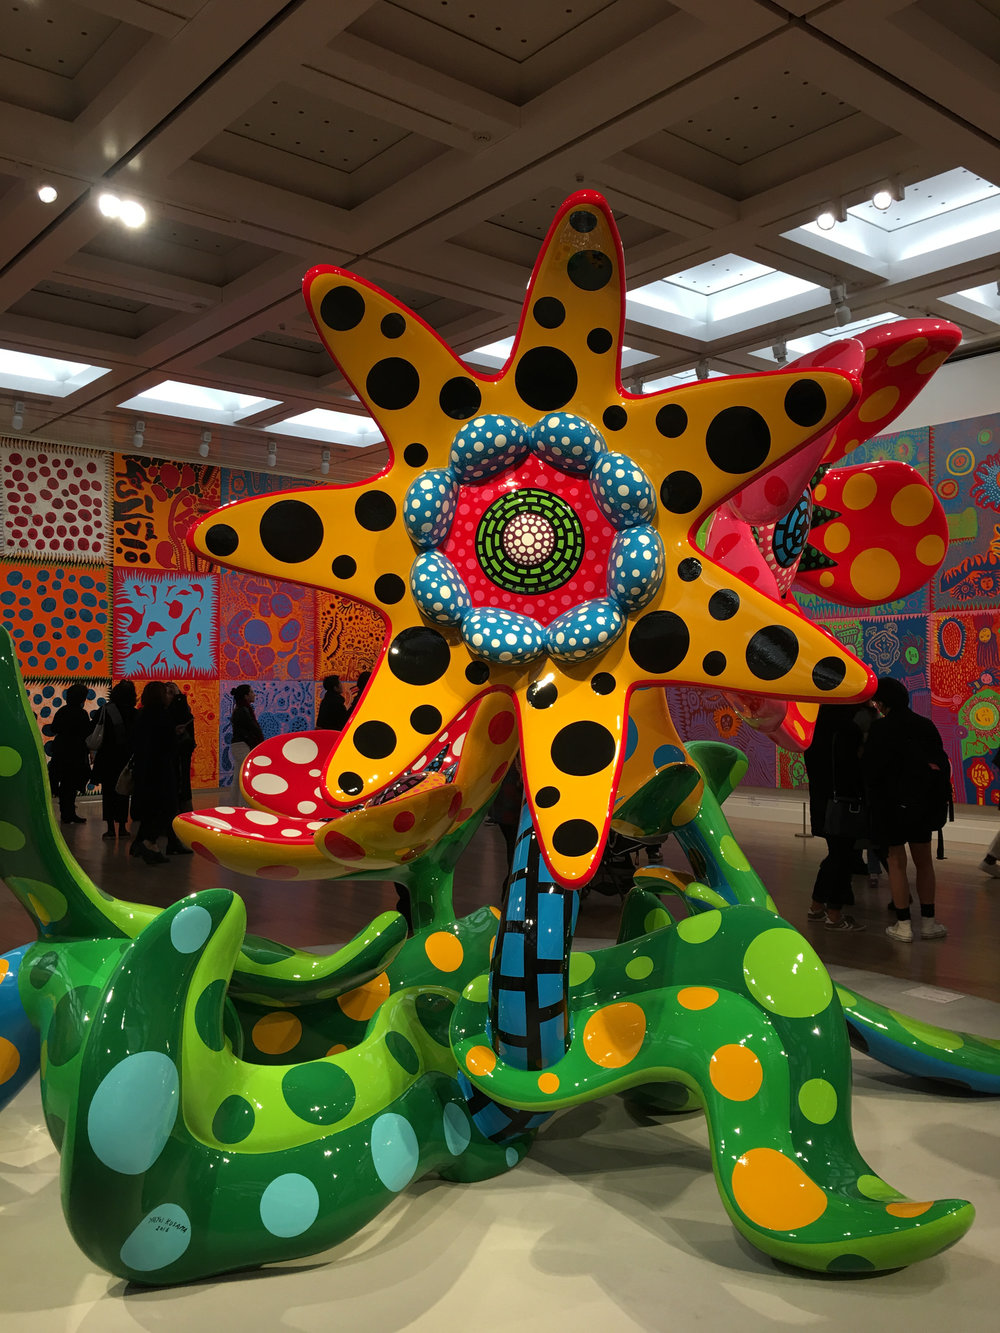 and another flower sculpture